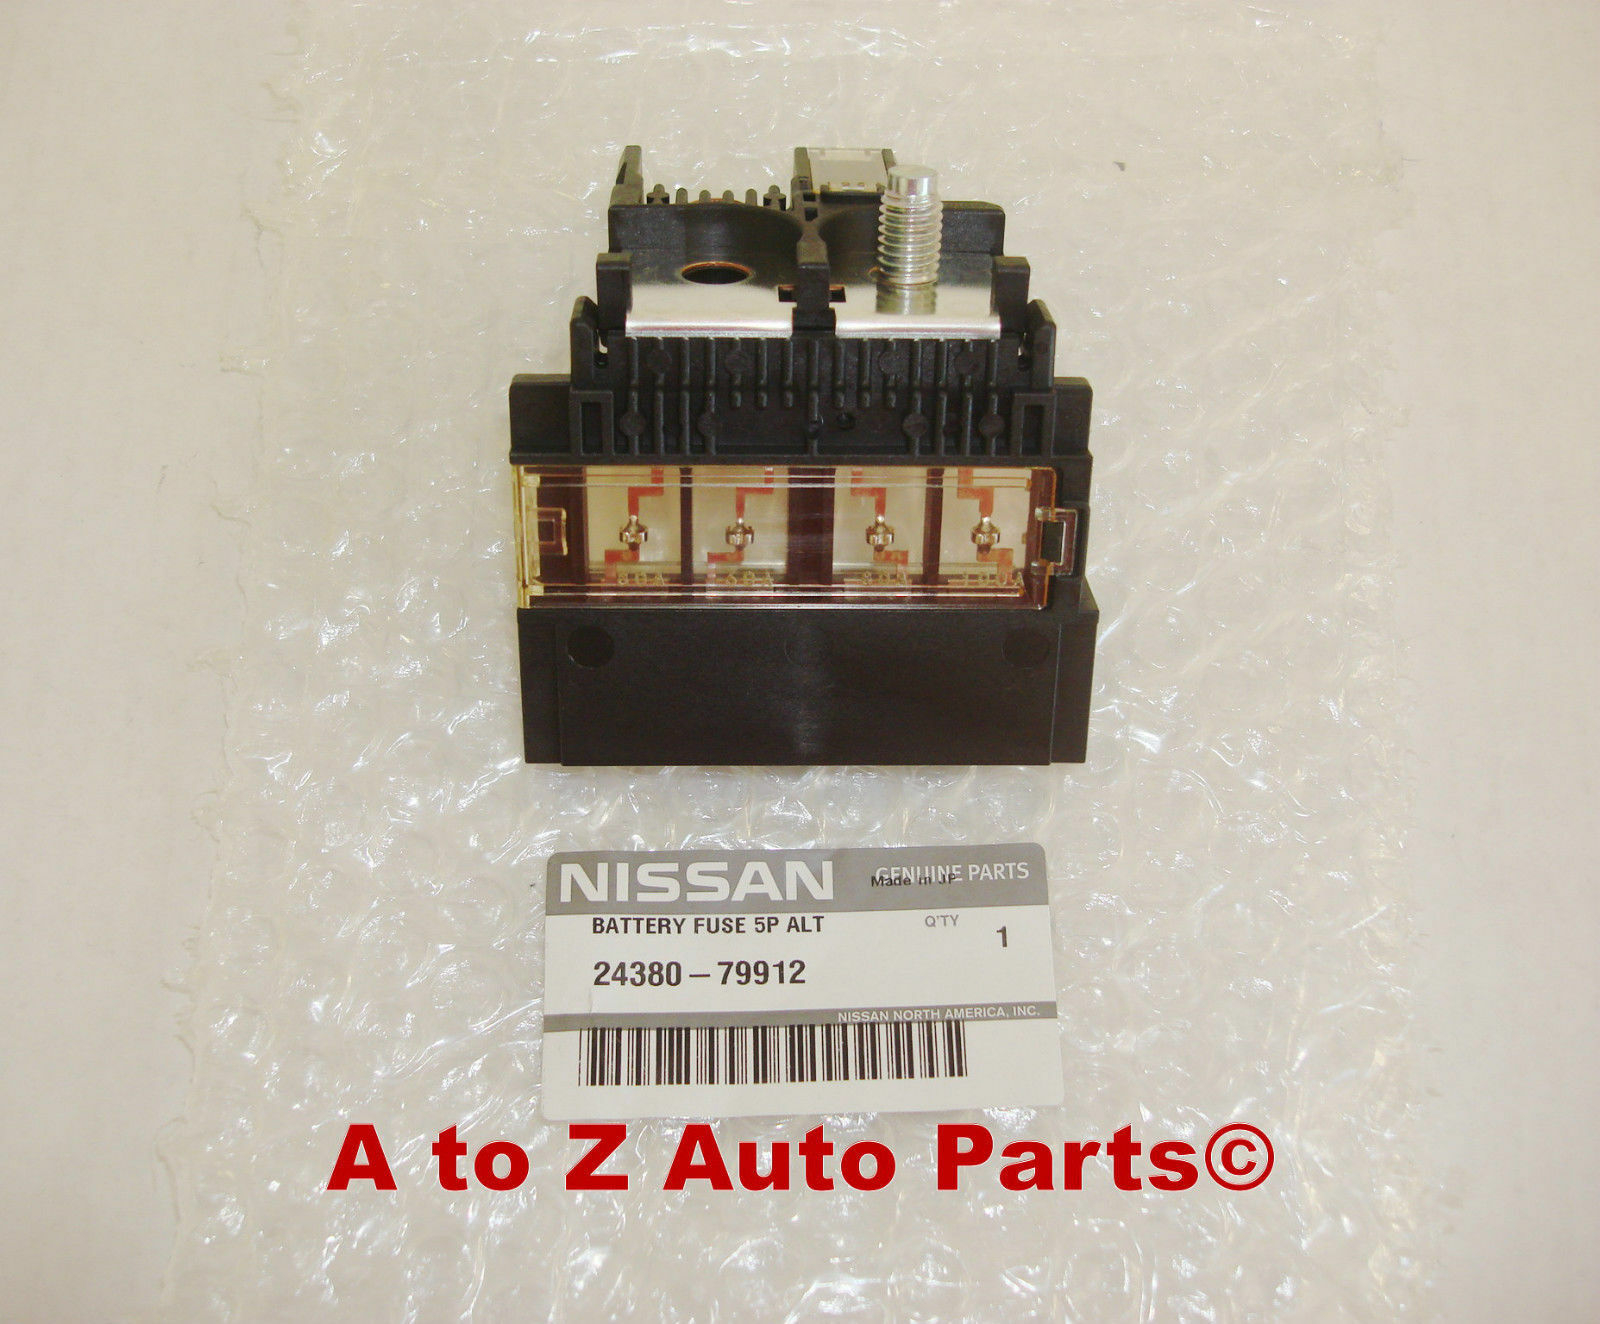 2002 Nissan Altima Fuse Box Cover Wiring Library 1995 Diagram 1 Of 1free Shipping 06